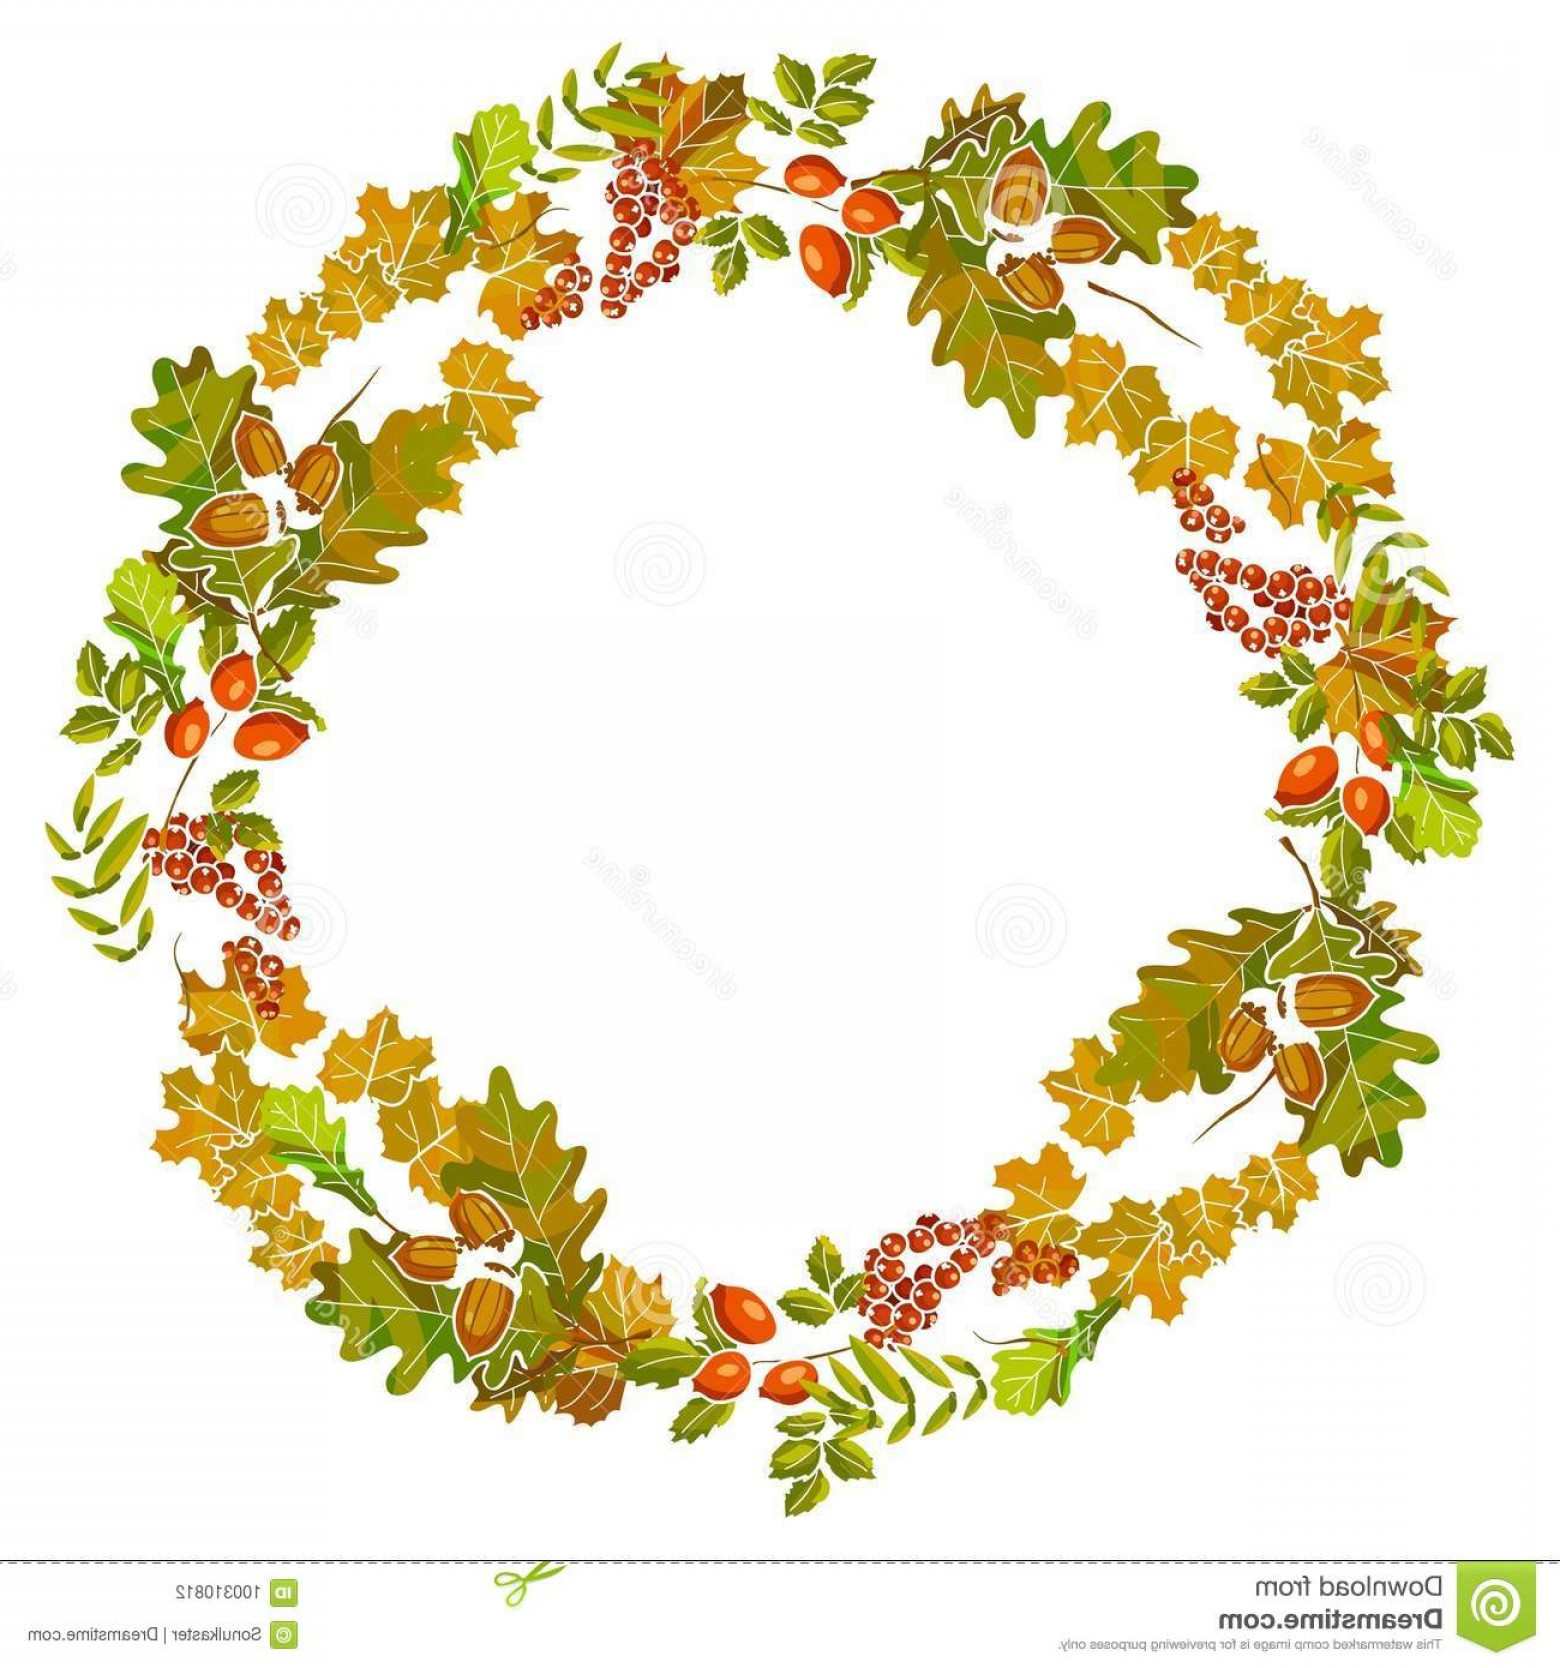 Foliage Vector: Autumn Leaves Wreath Decoration Fall Leaf Foliage Vector Design Template Thanksgiving Seasonal Sale Maple Chestnut Birch Image